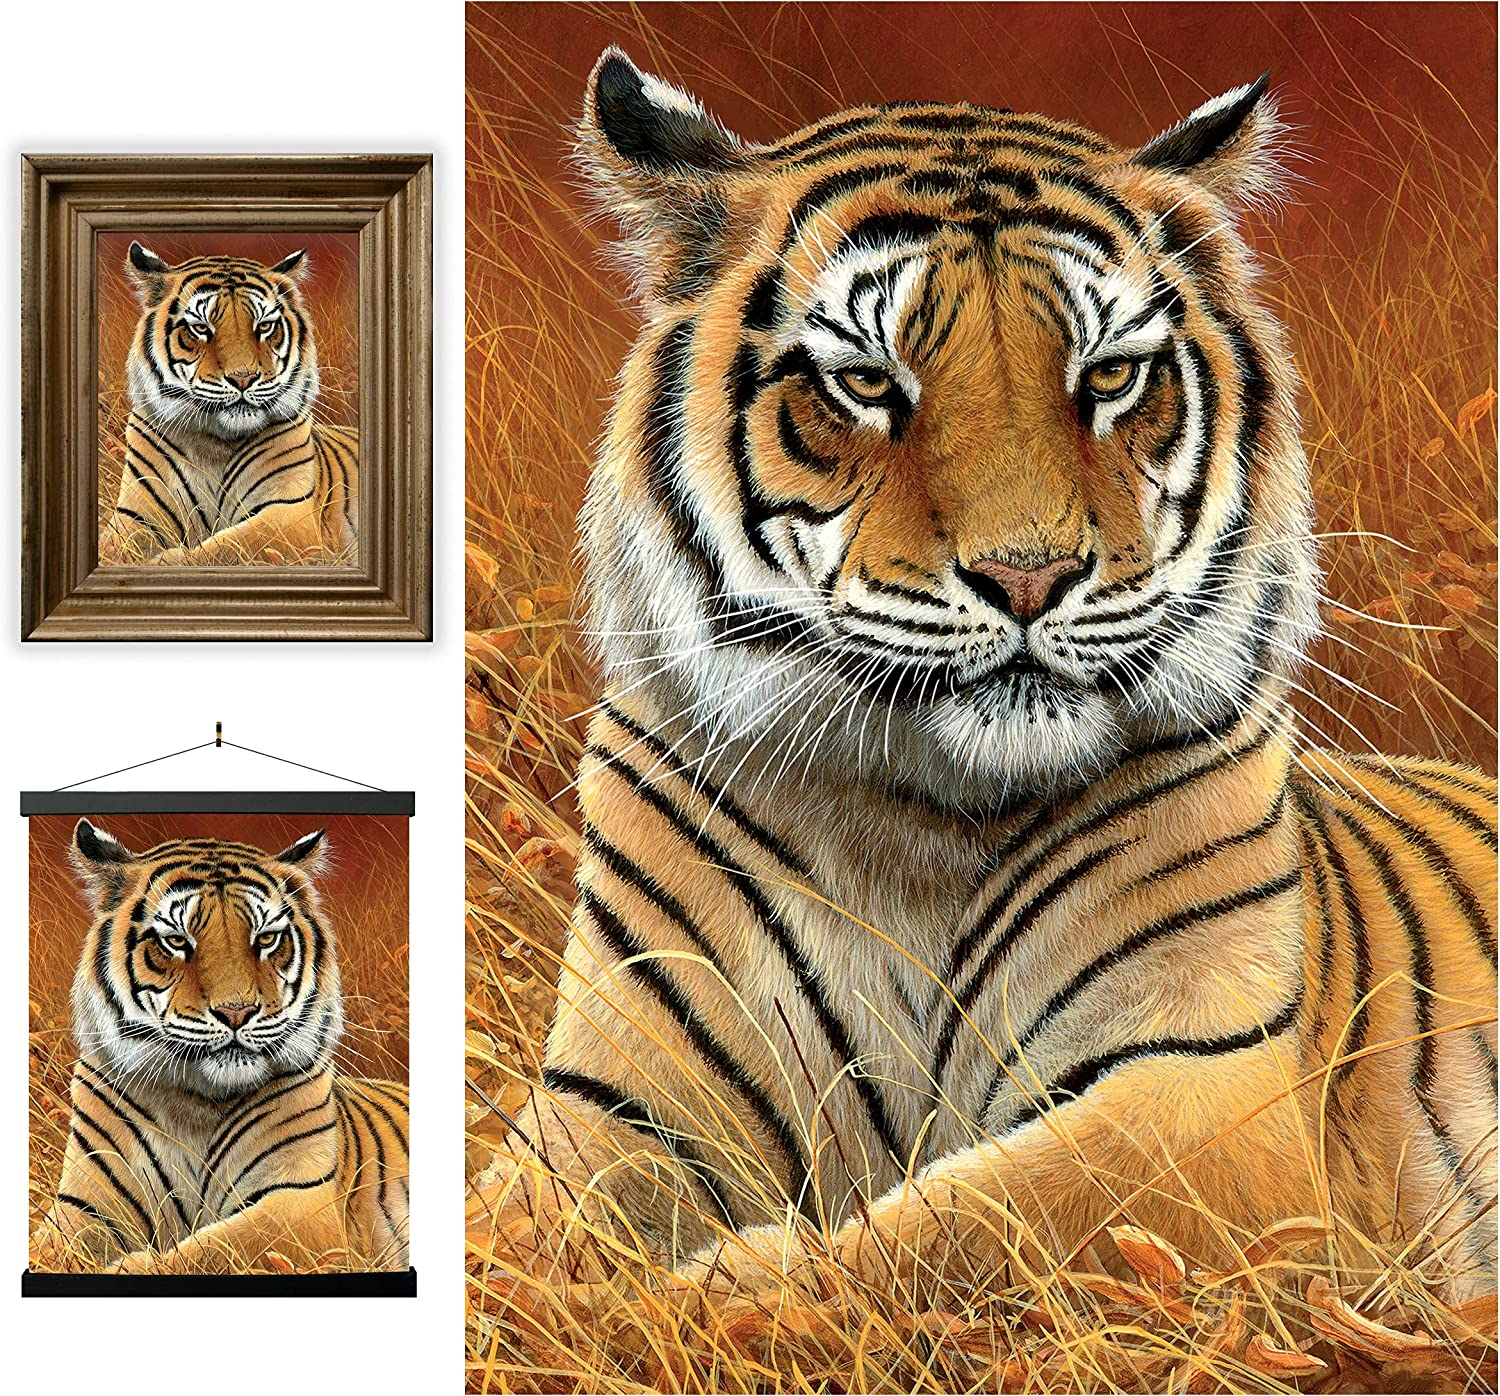 3D LiveLife Lenticular Wall Art Prints - Aloof from Deluxebase. Unframed 3D Tiger Poster. Perfect wall decor. Original artwork licensed from renowned artist, Jeremy Paul